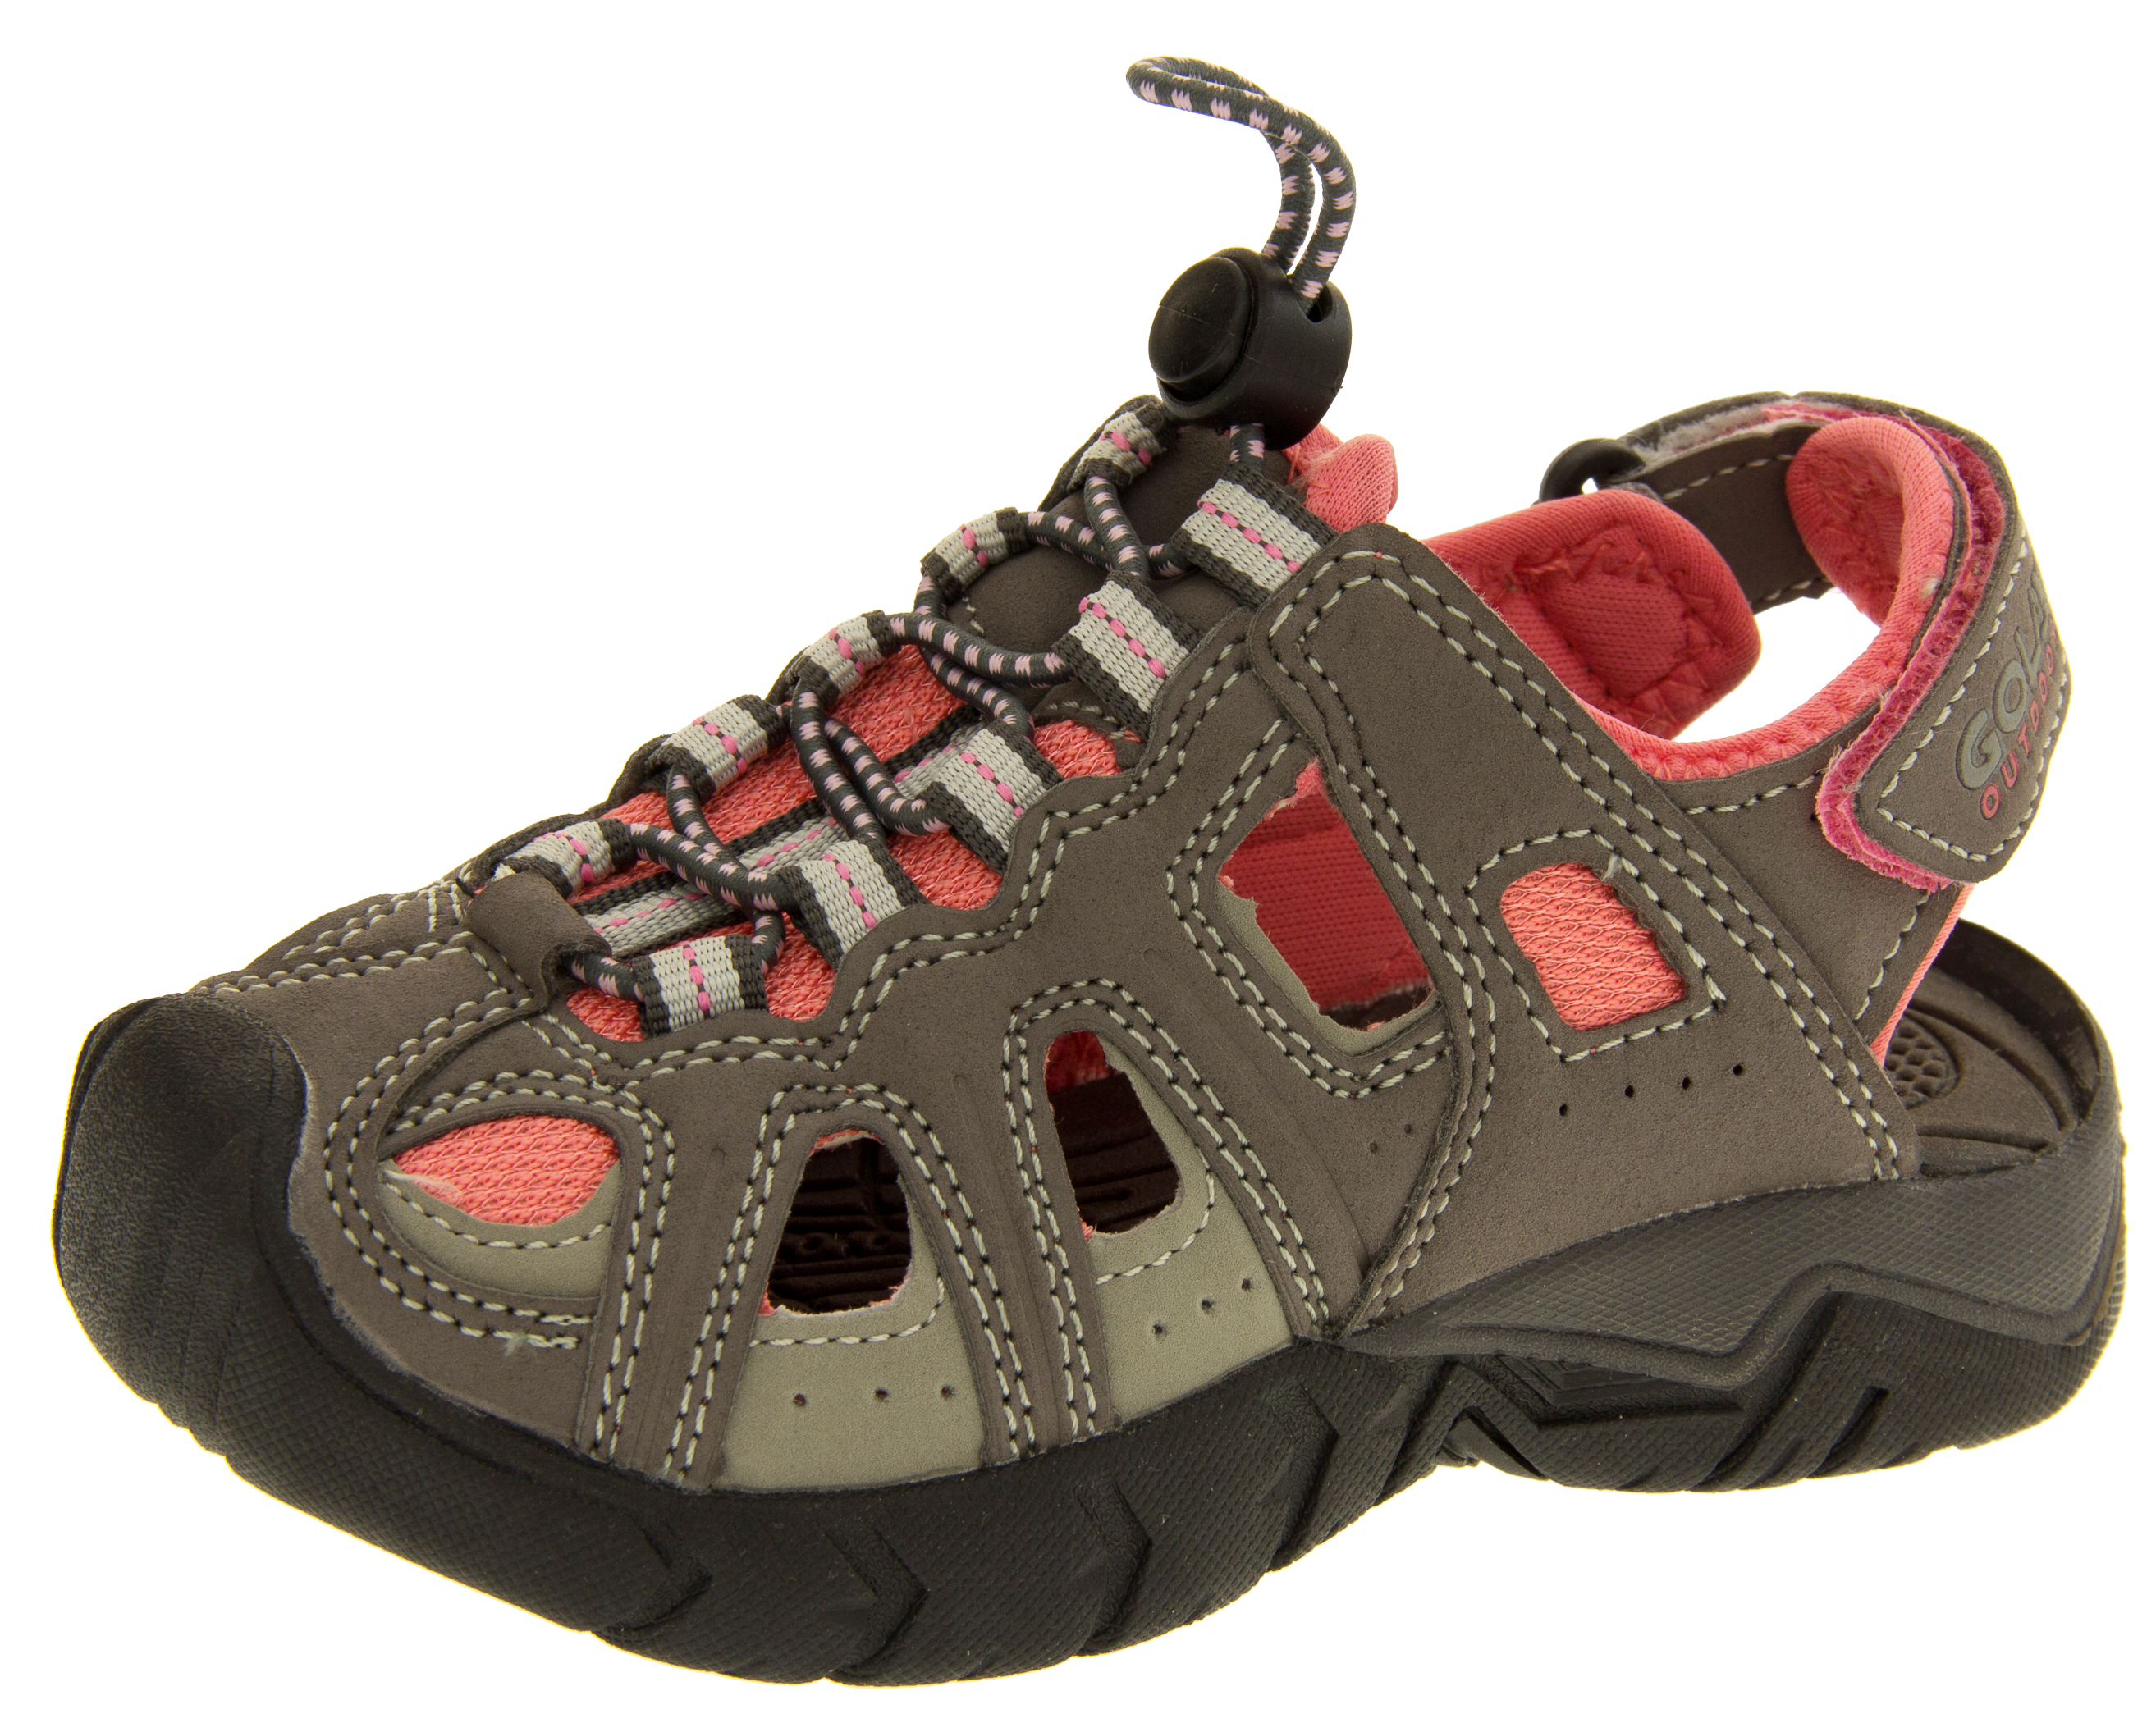 80165fbf454 Gola Unisex Childrens Boys Girls Walking and Hiking Sandals